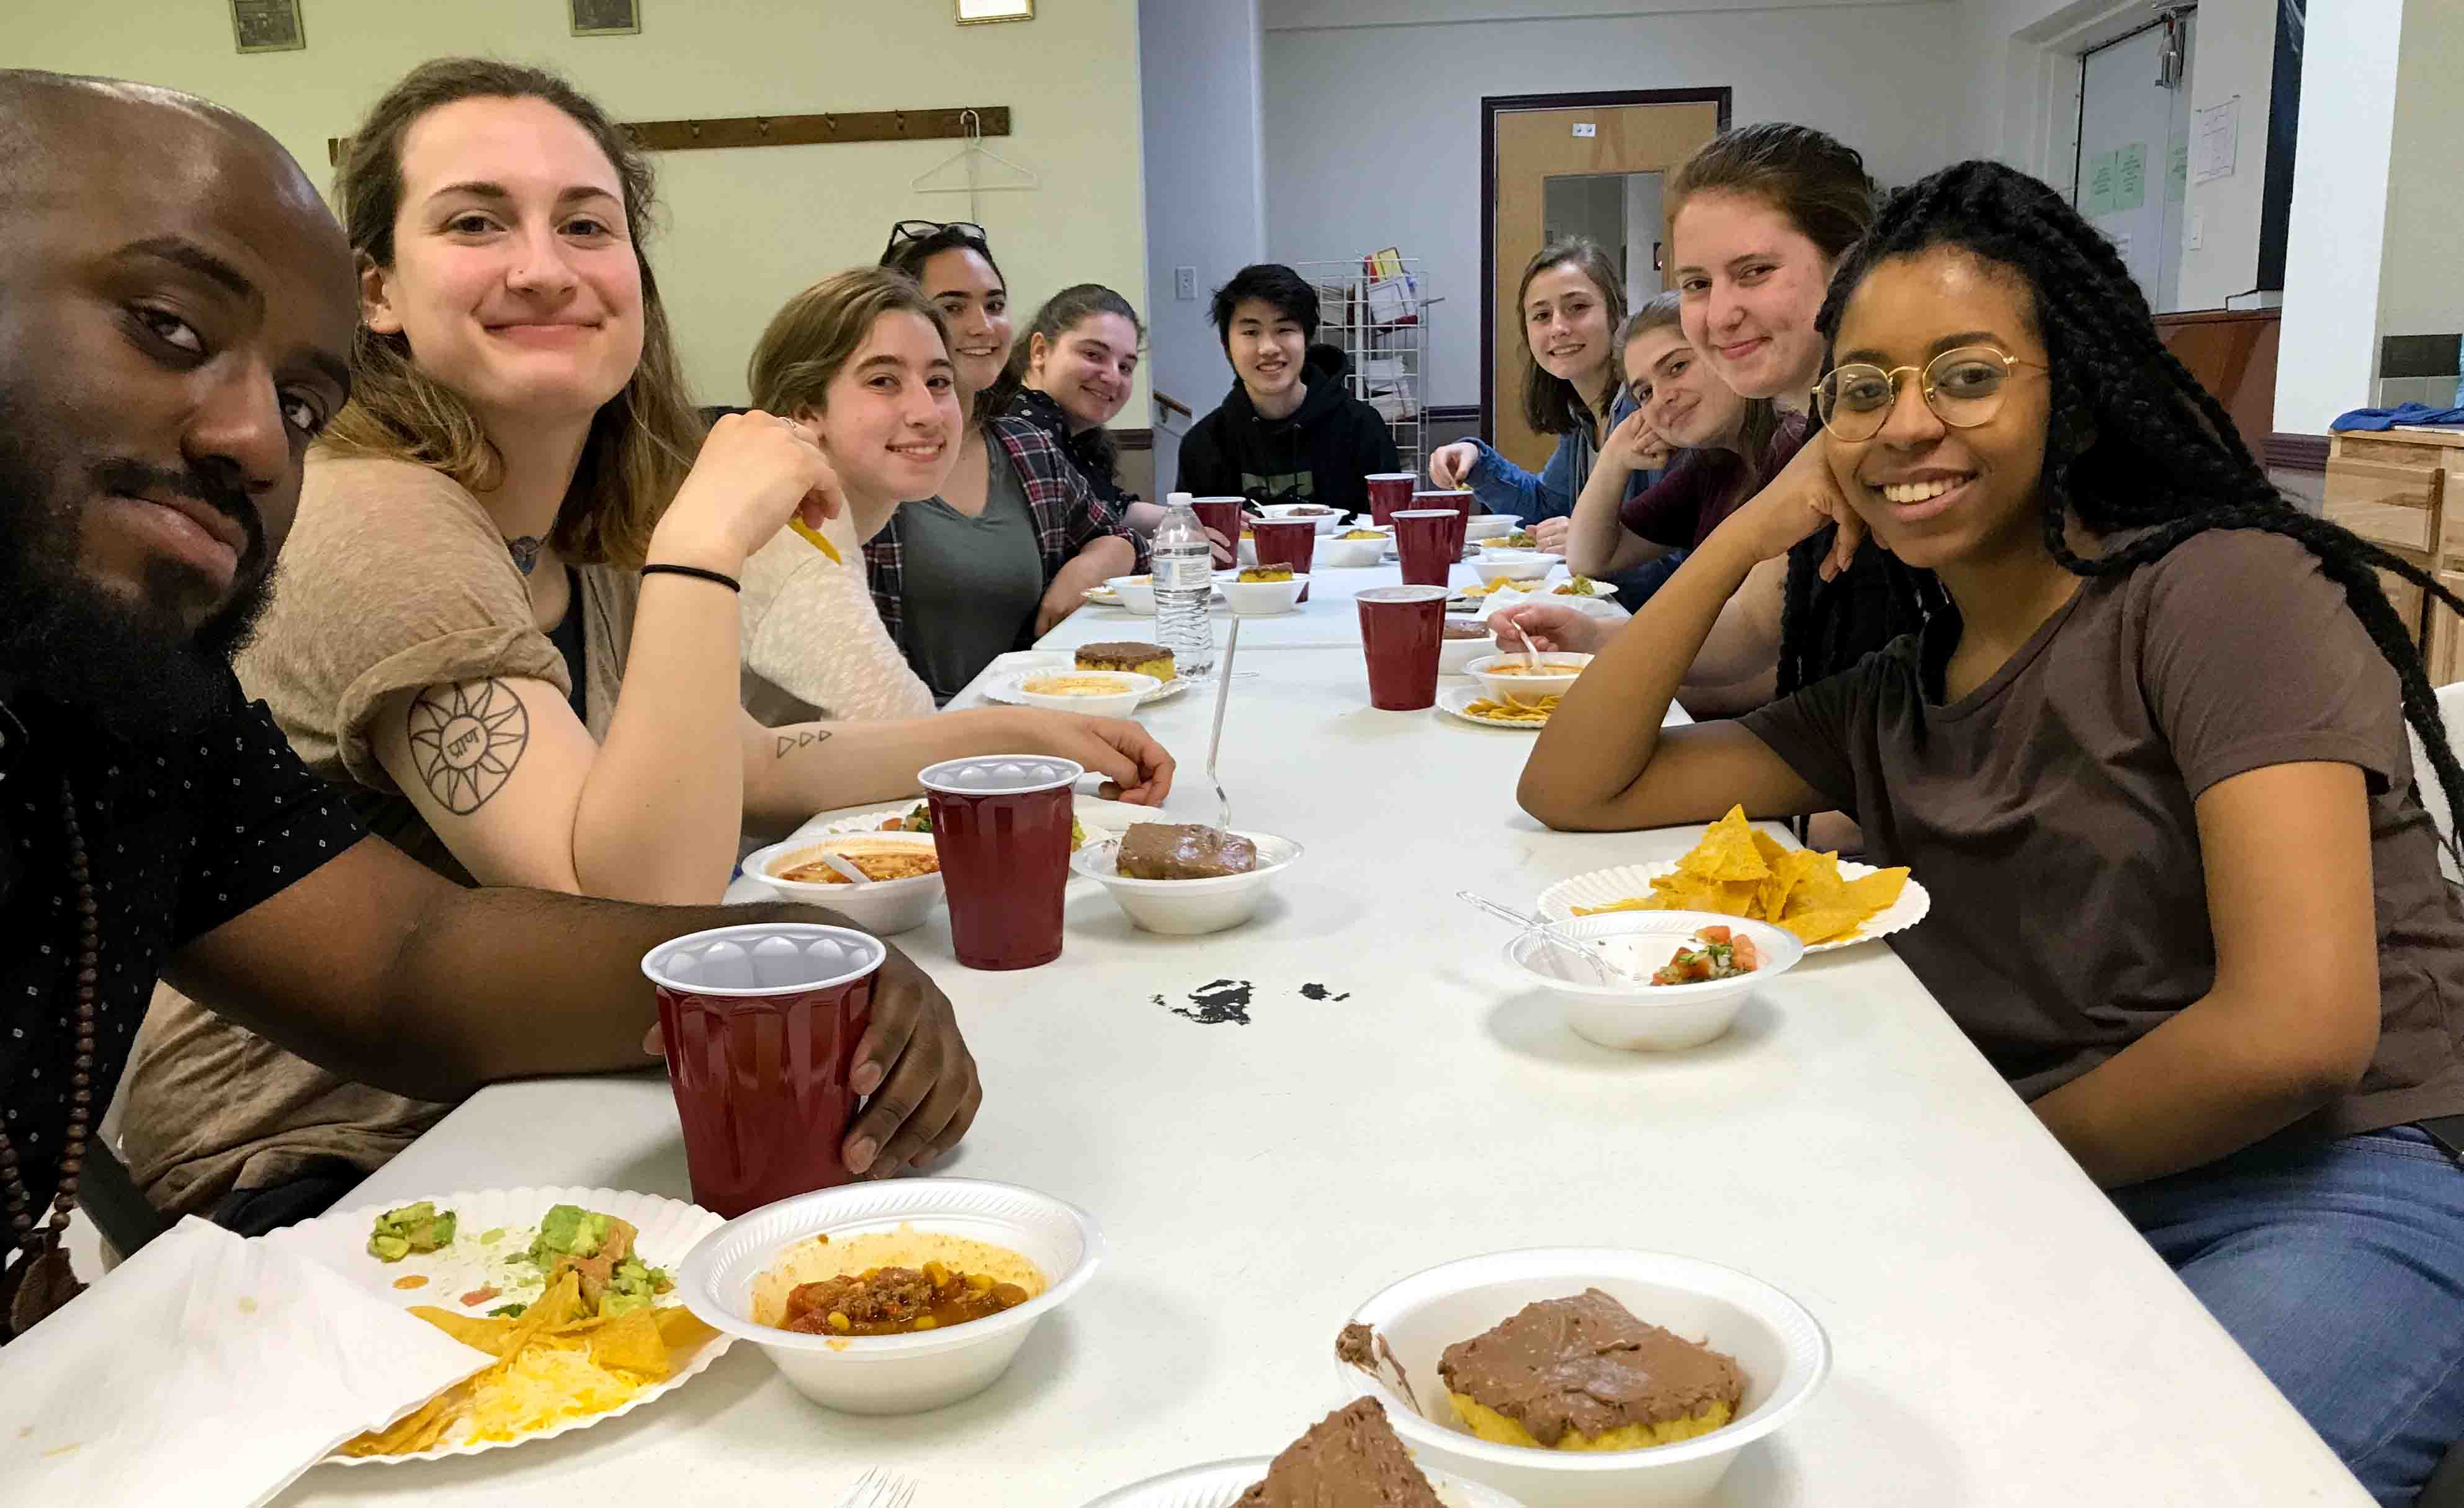 Students pose for a photo while seated for a meal during their Alternative School Break trip to serve and learn about the Texas criminal justice system.